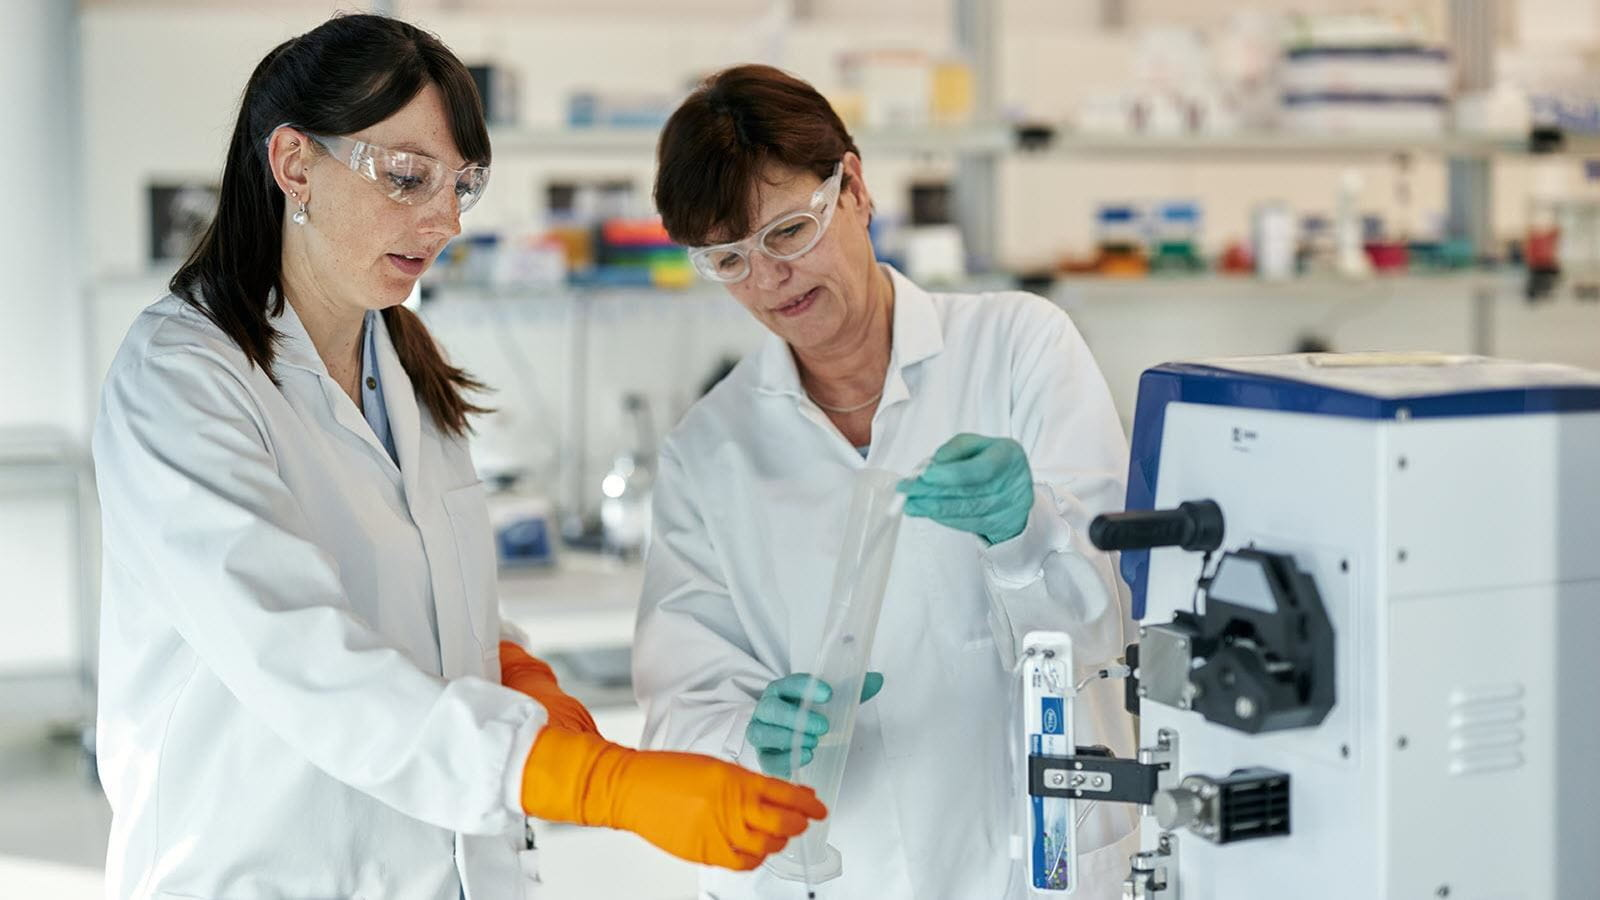 Two scientists at work in the lab.